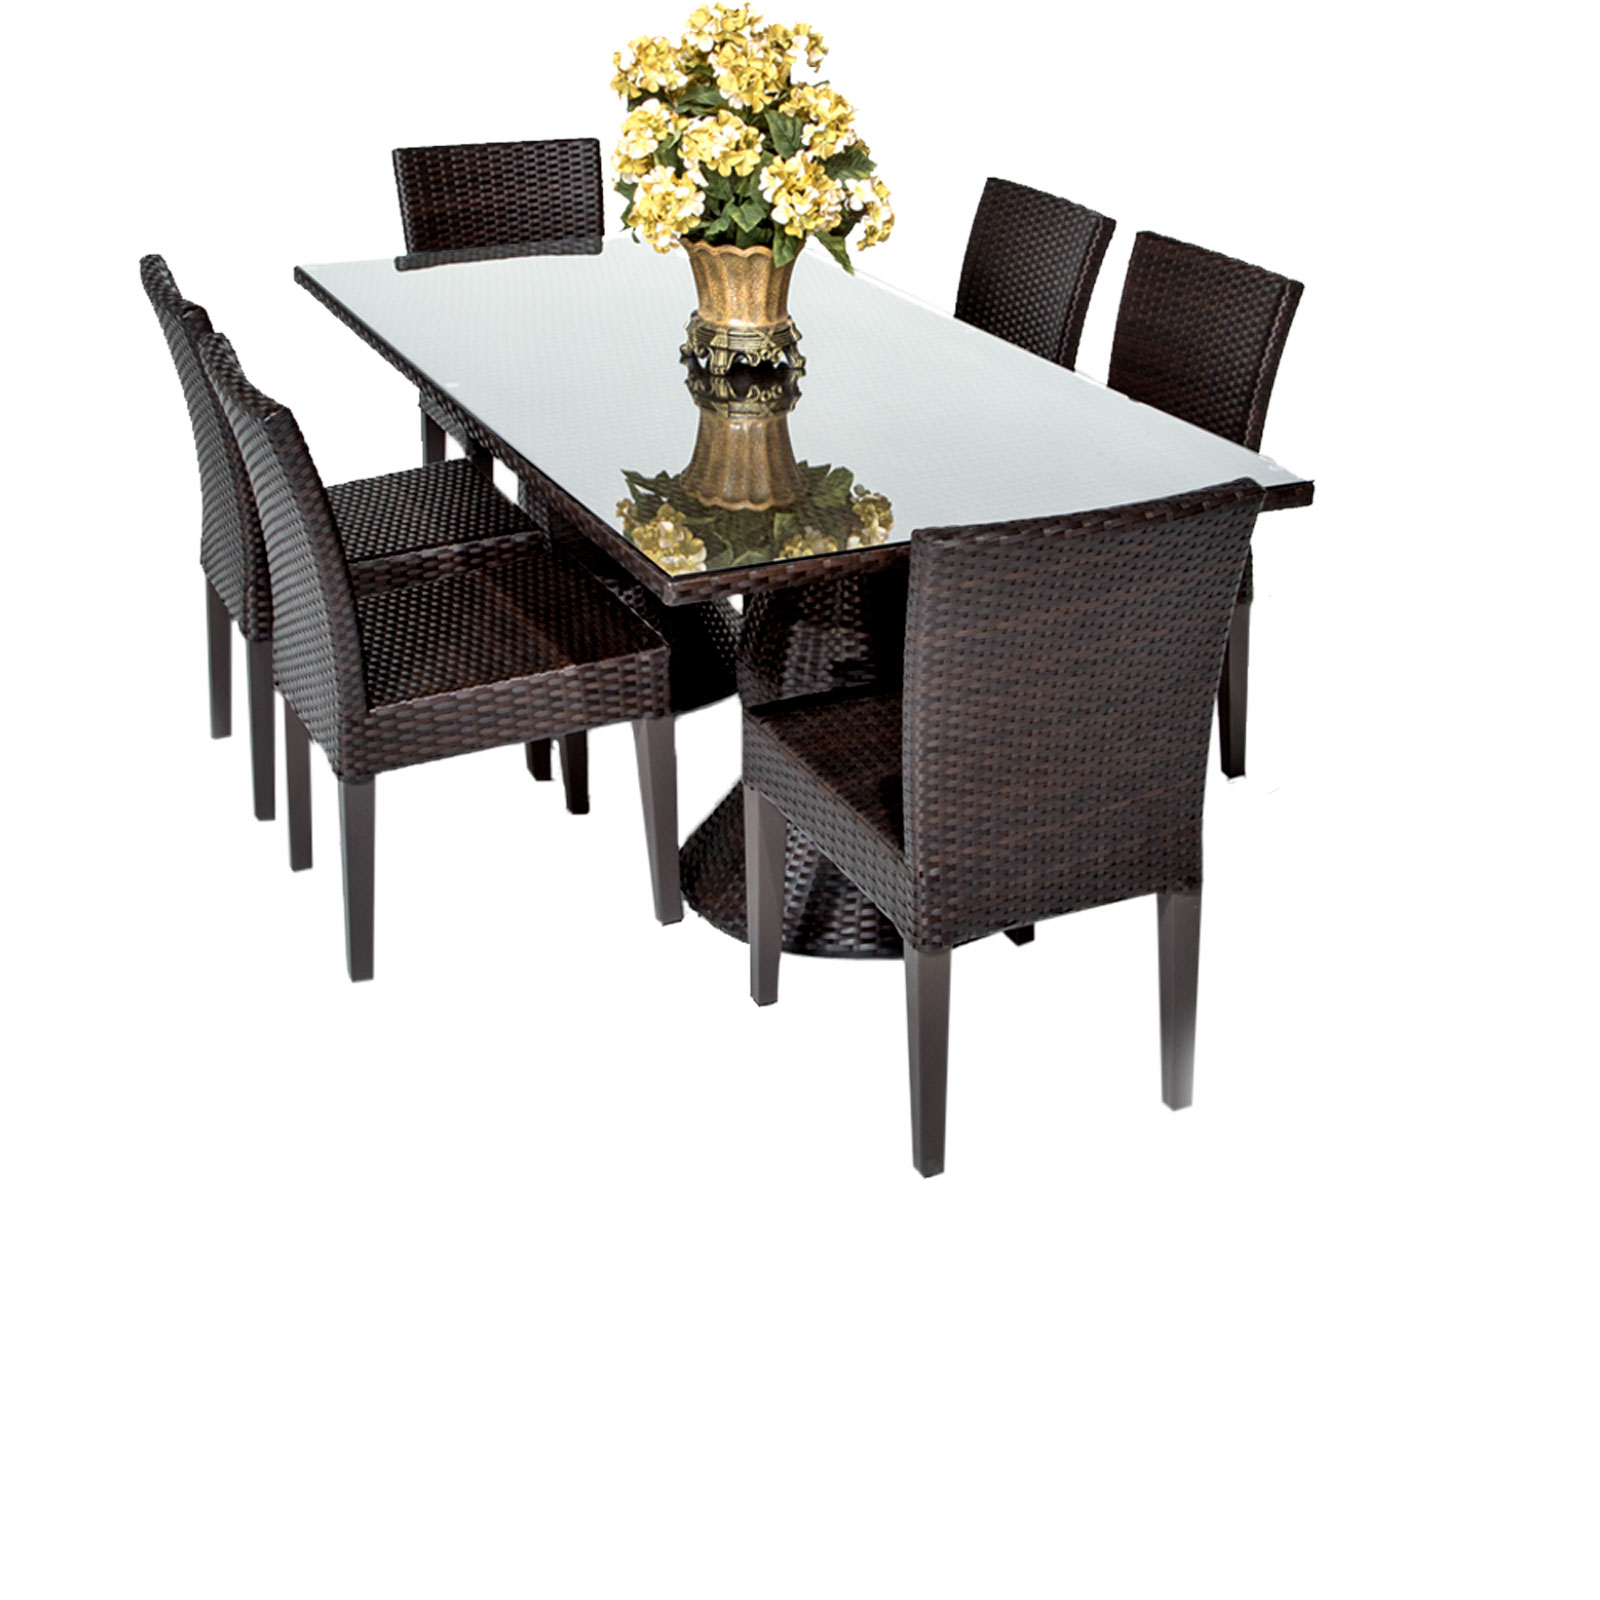 Saturn Outdoor Dining Table & Chairs - Garden Patio Sets